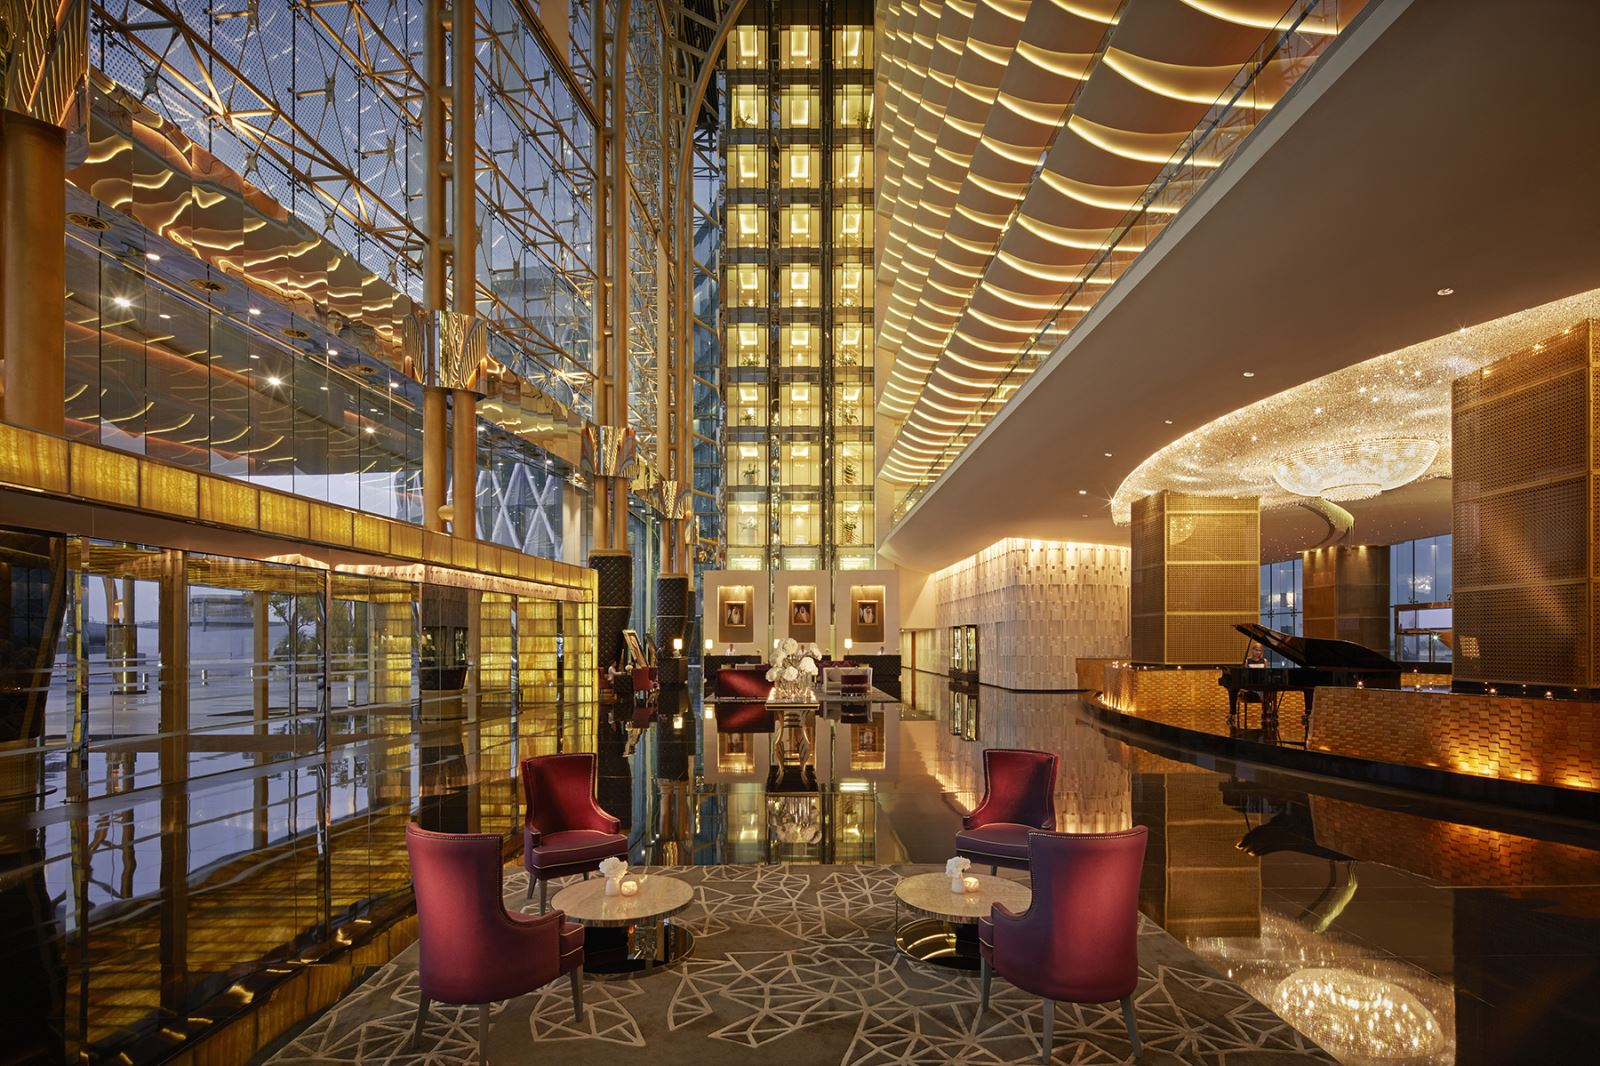 Christmas in Dubai and New Year's Eve at The Meydan Hotel